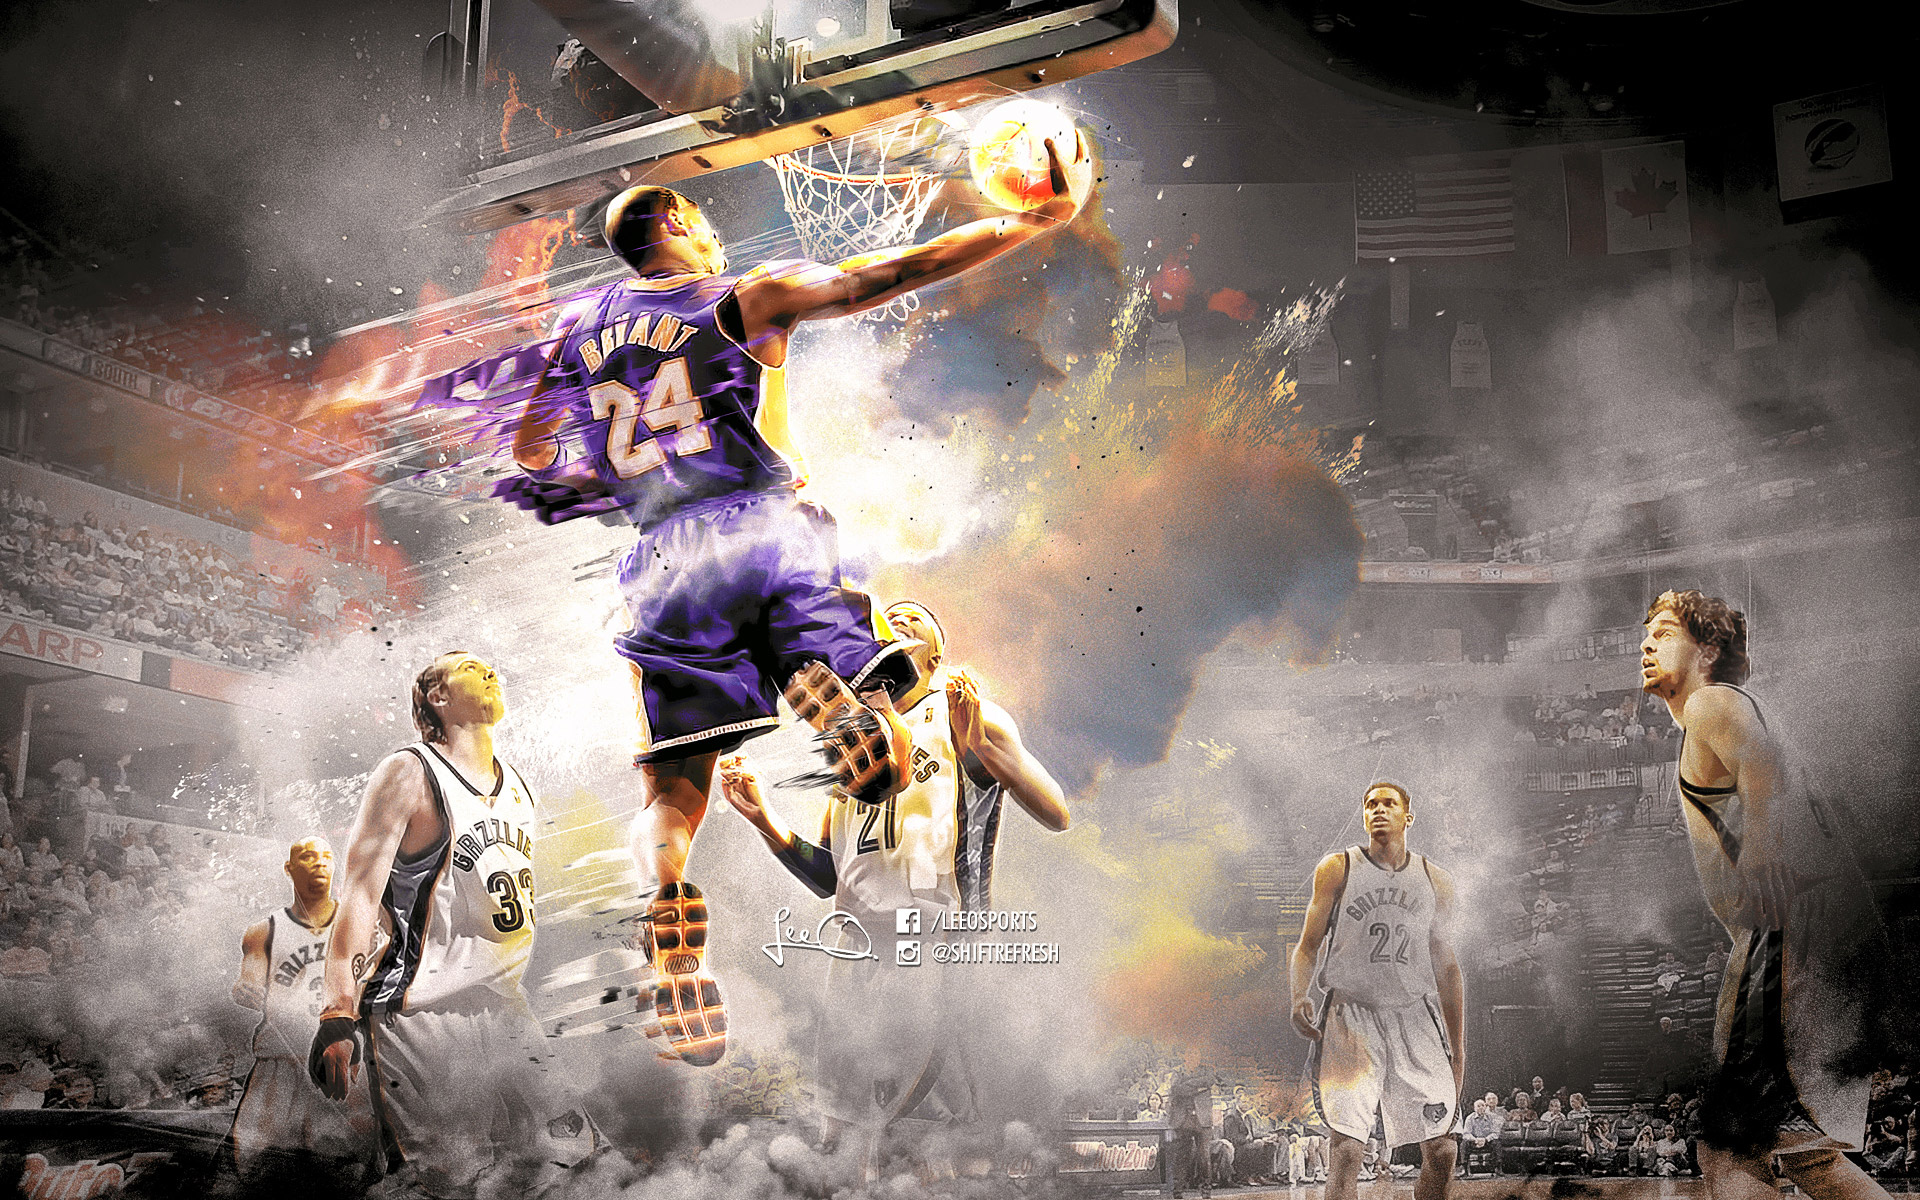 Kobe Bryant 2016 Grizzlies 1920×1200 Wallpaper